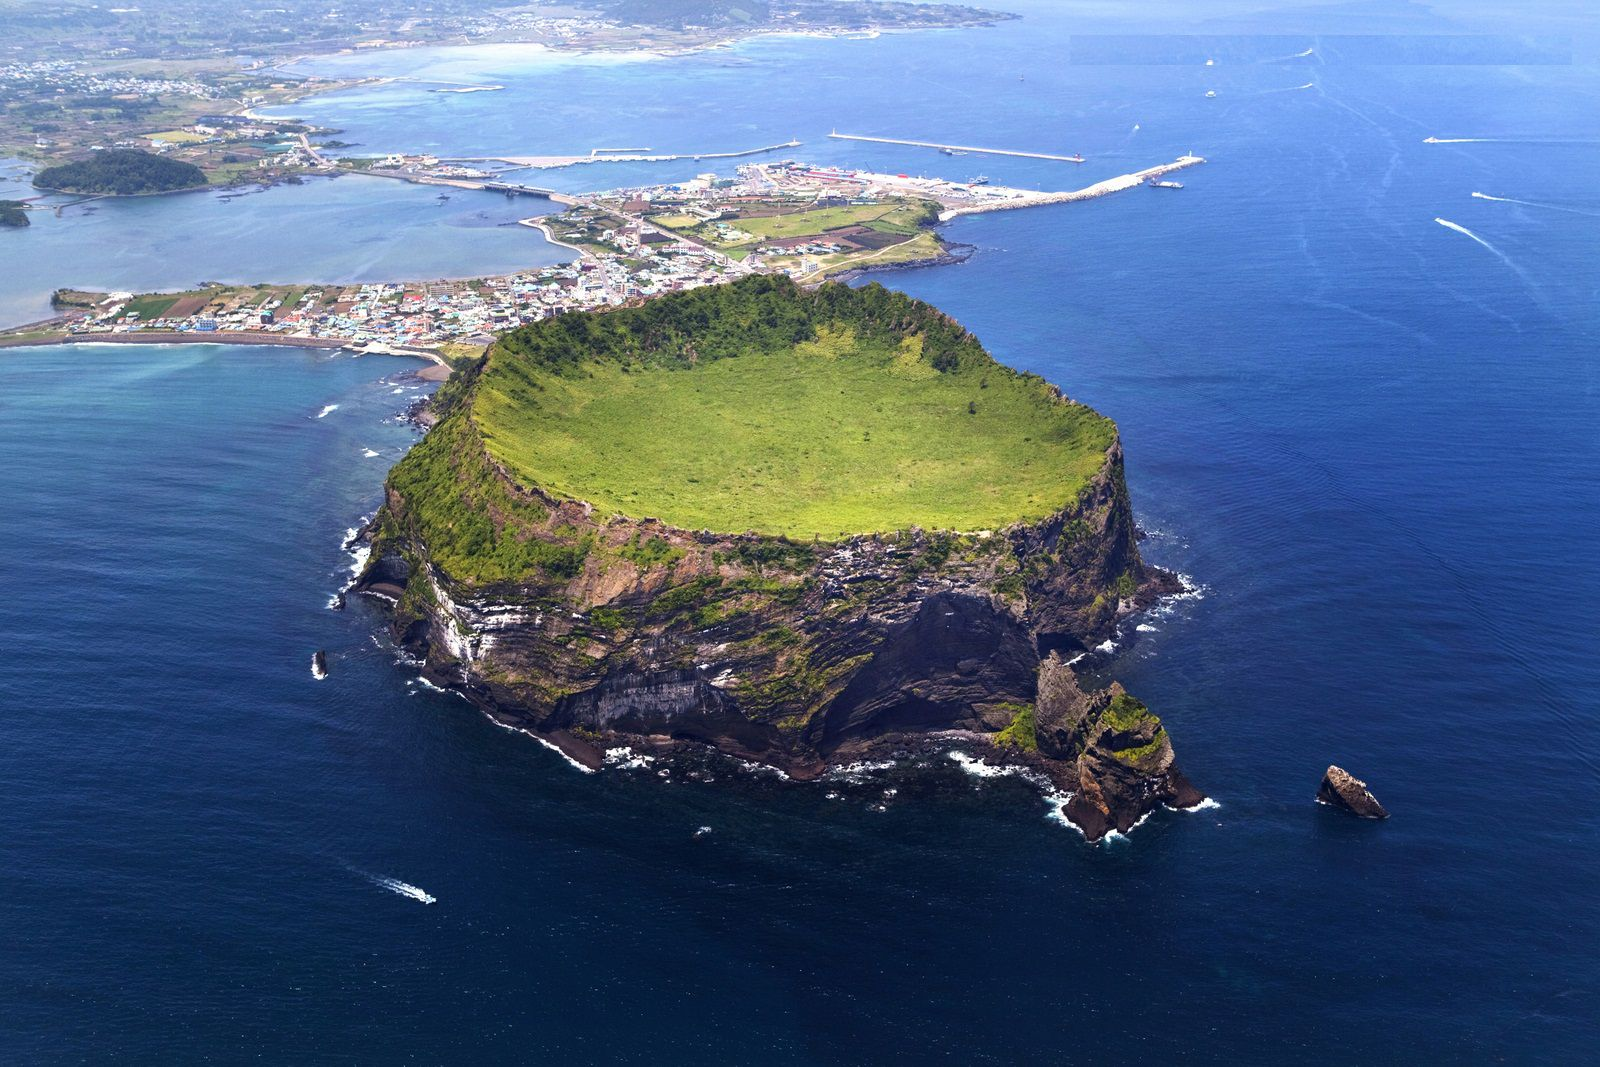 Jeju Special Self-Governing